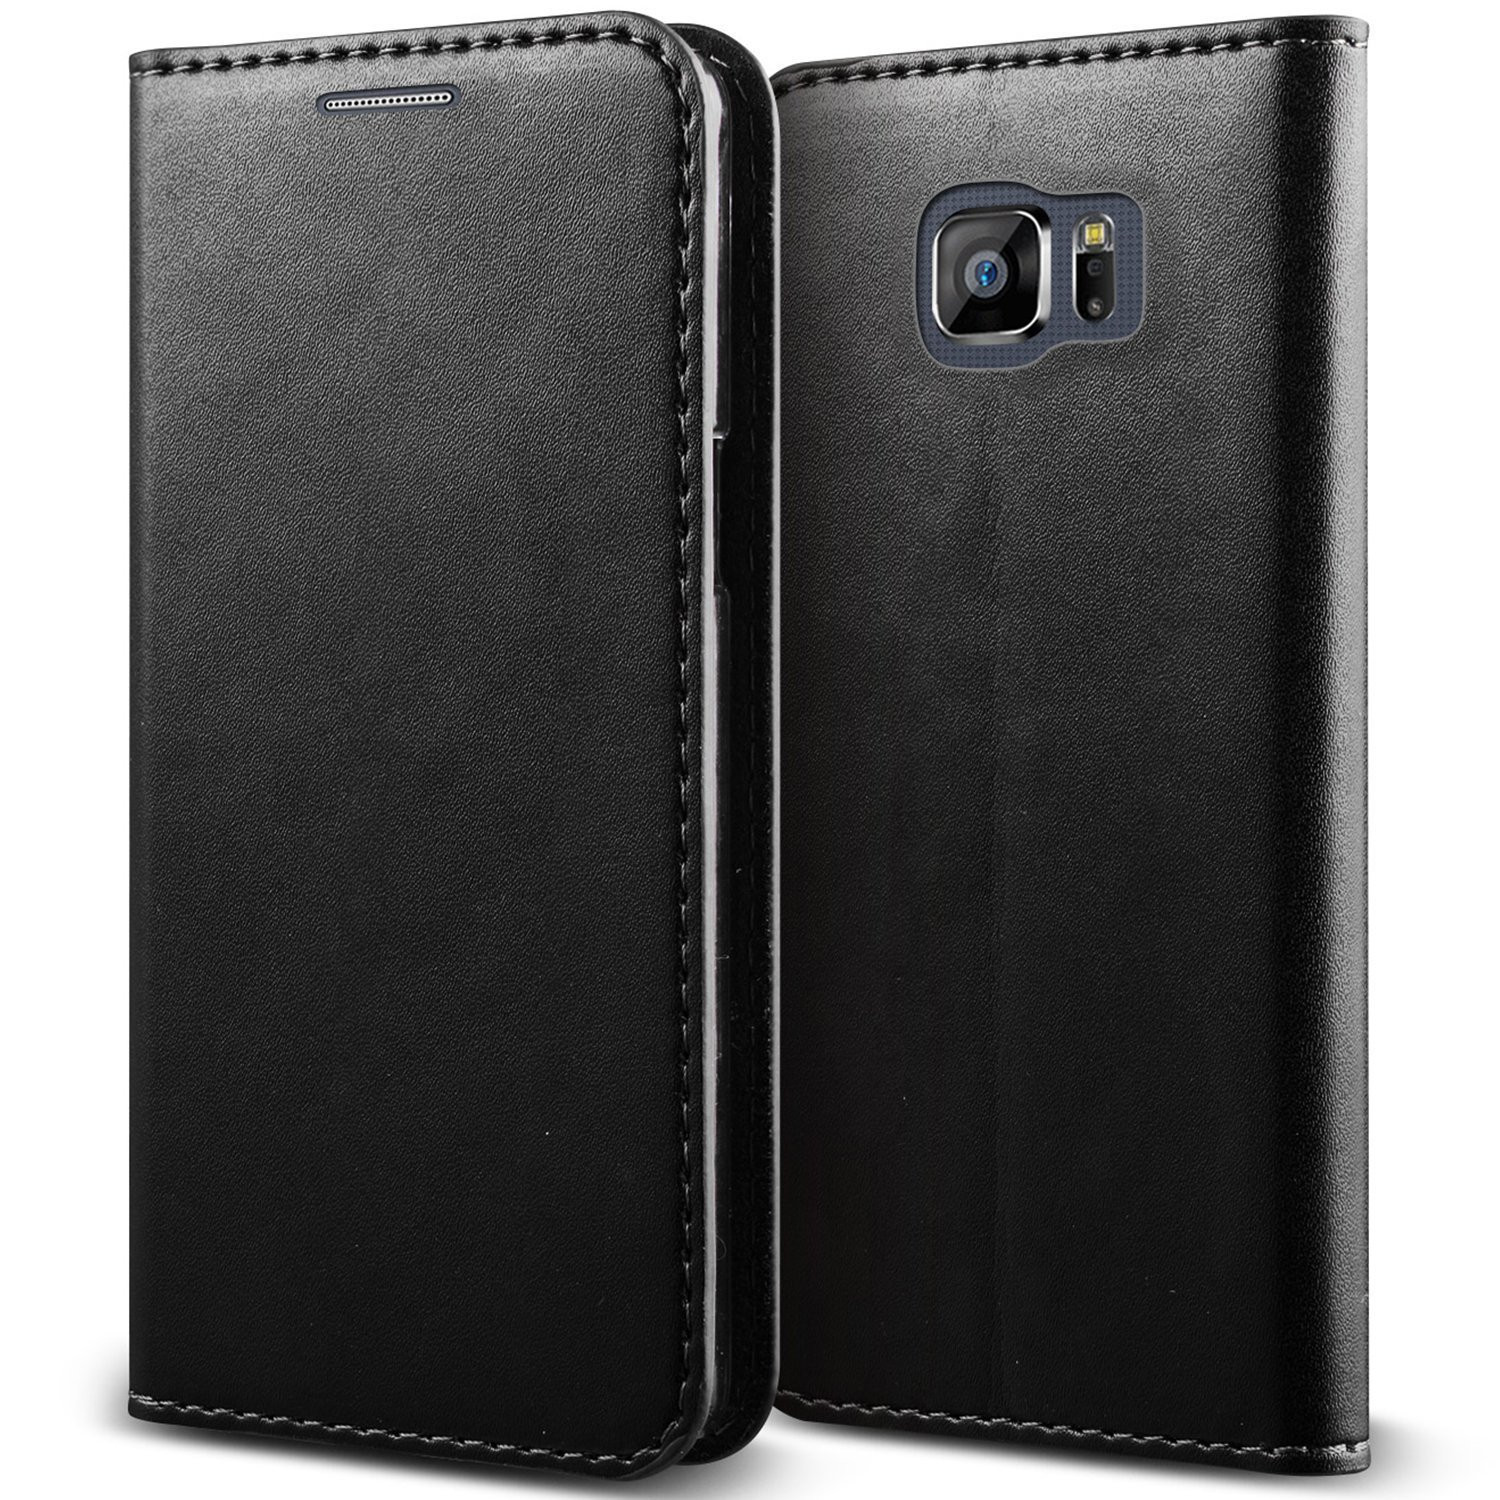 Samsung Galaxy S6 Edge Plus Case, Genuine Leather Magnetic Fold[Kickstand] Wallet Case with ID & Card Slots for S6 Edge Plus - Black